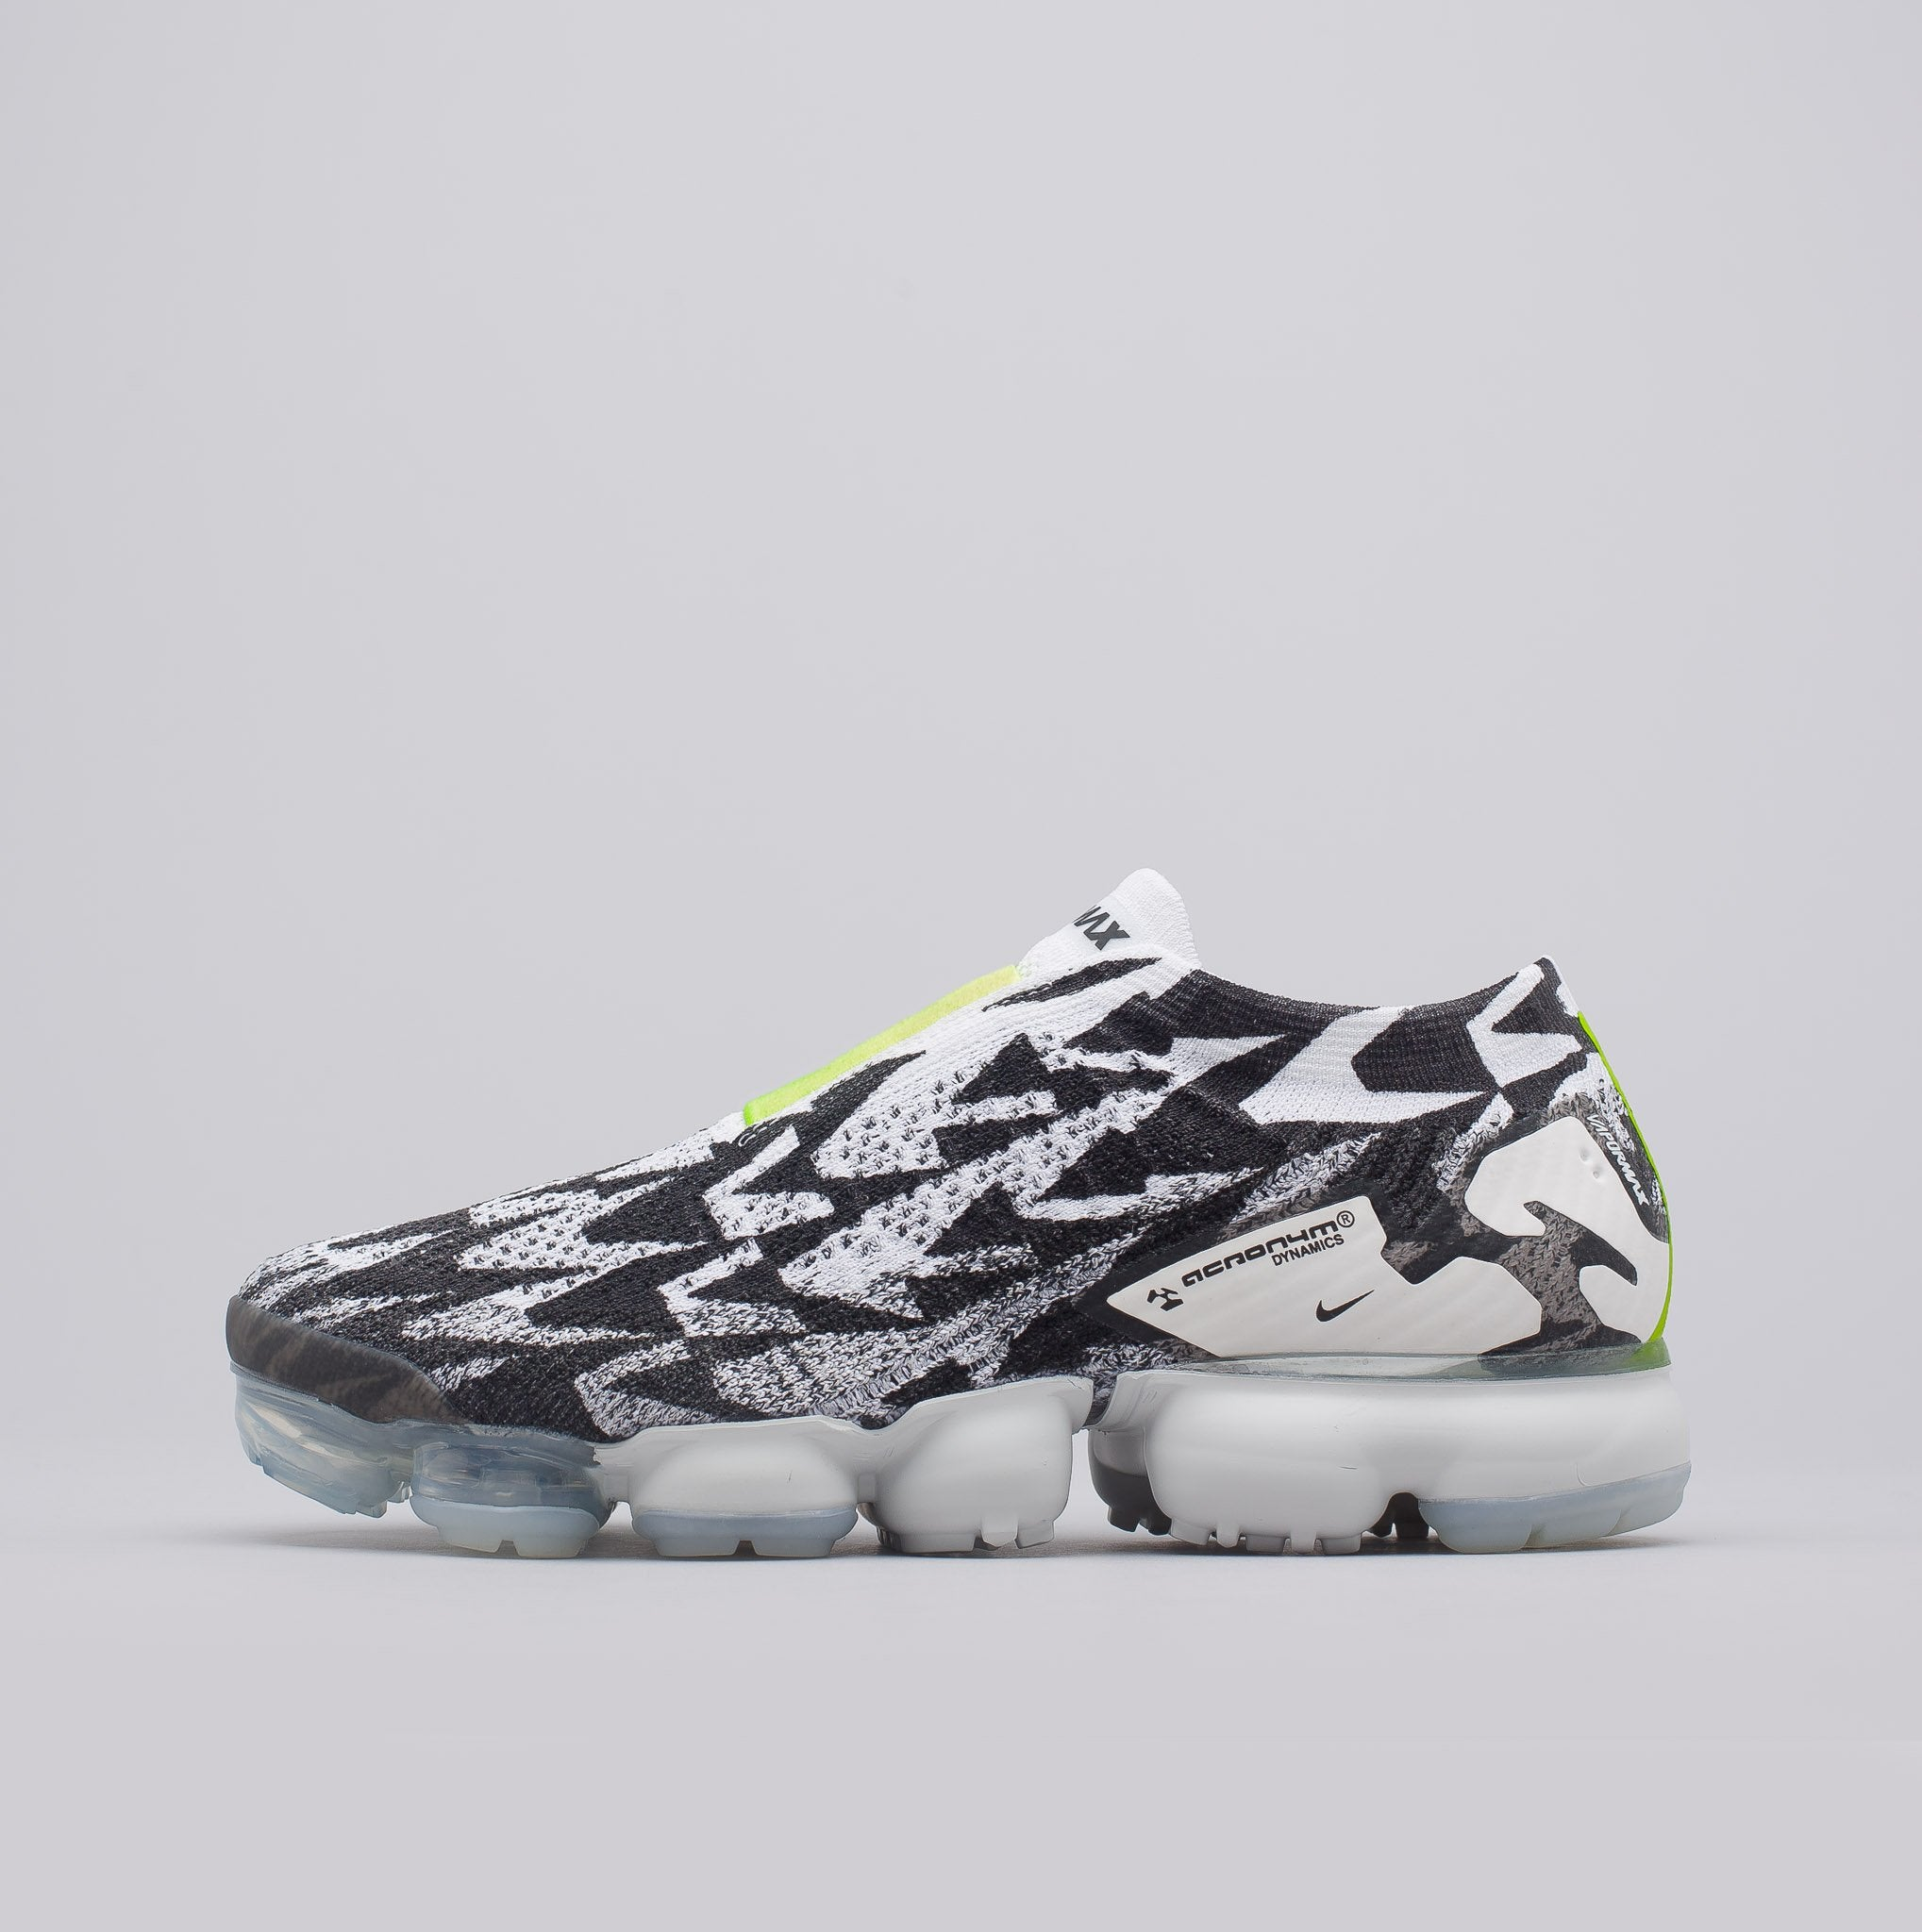 d1883820ff2 Acronym Air Vapormax FK Moc 2 in Light Bone Volt Green – PZOZO